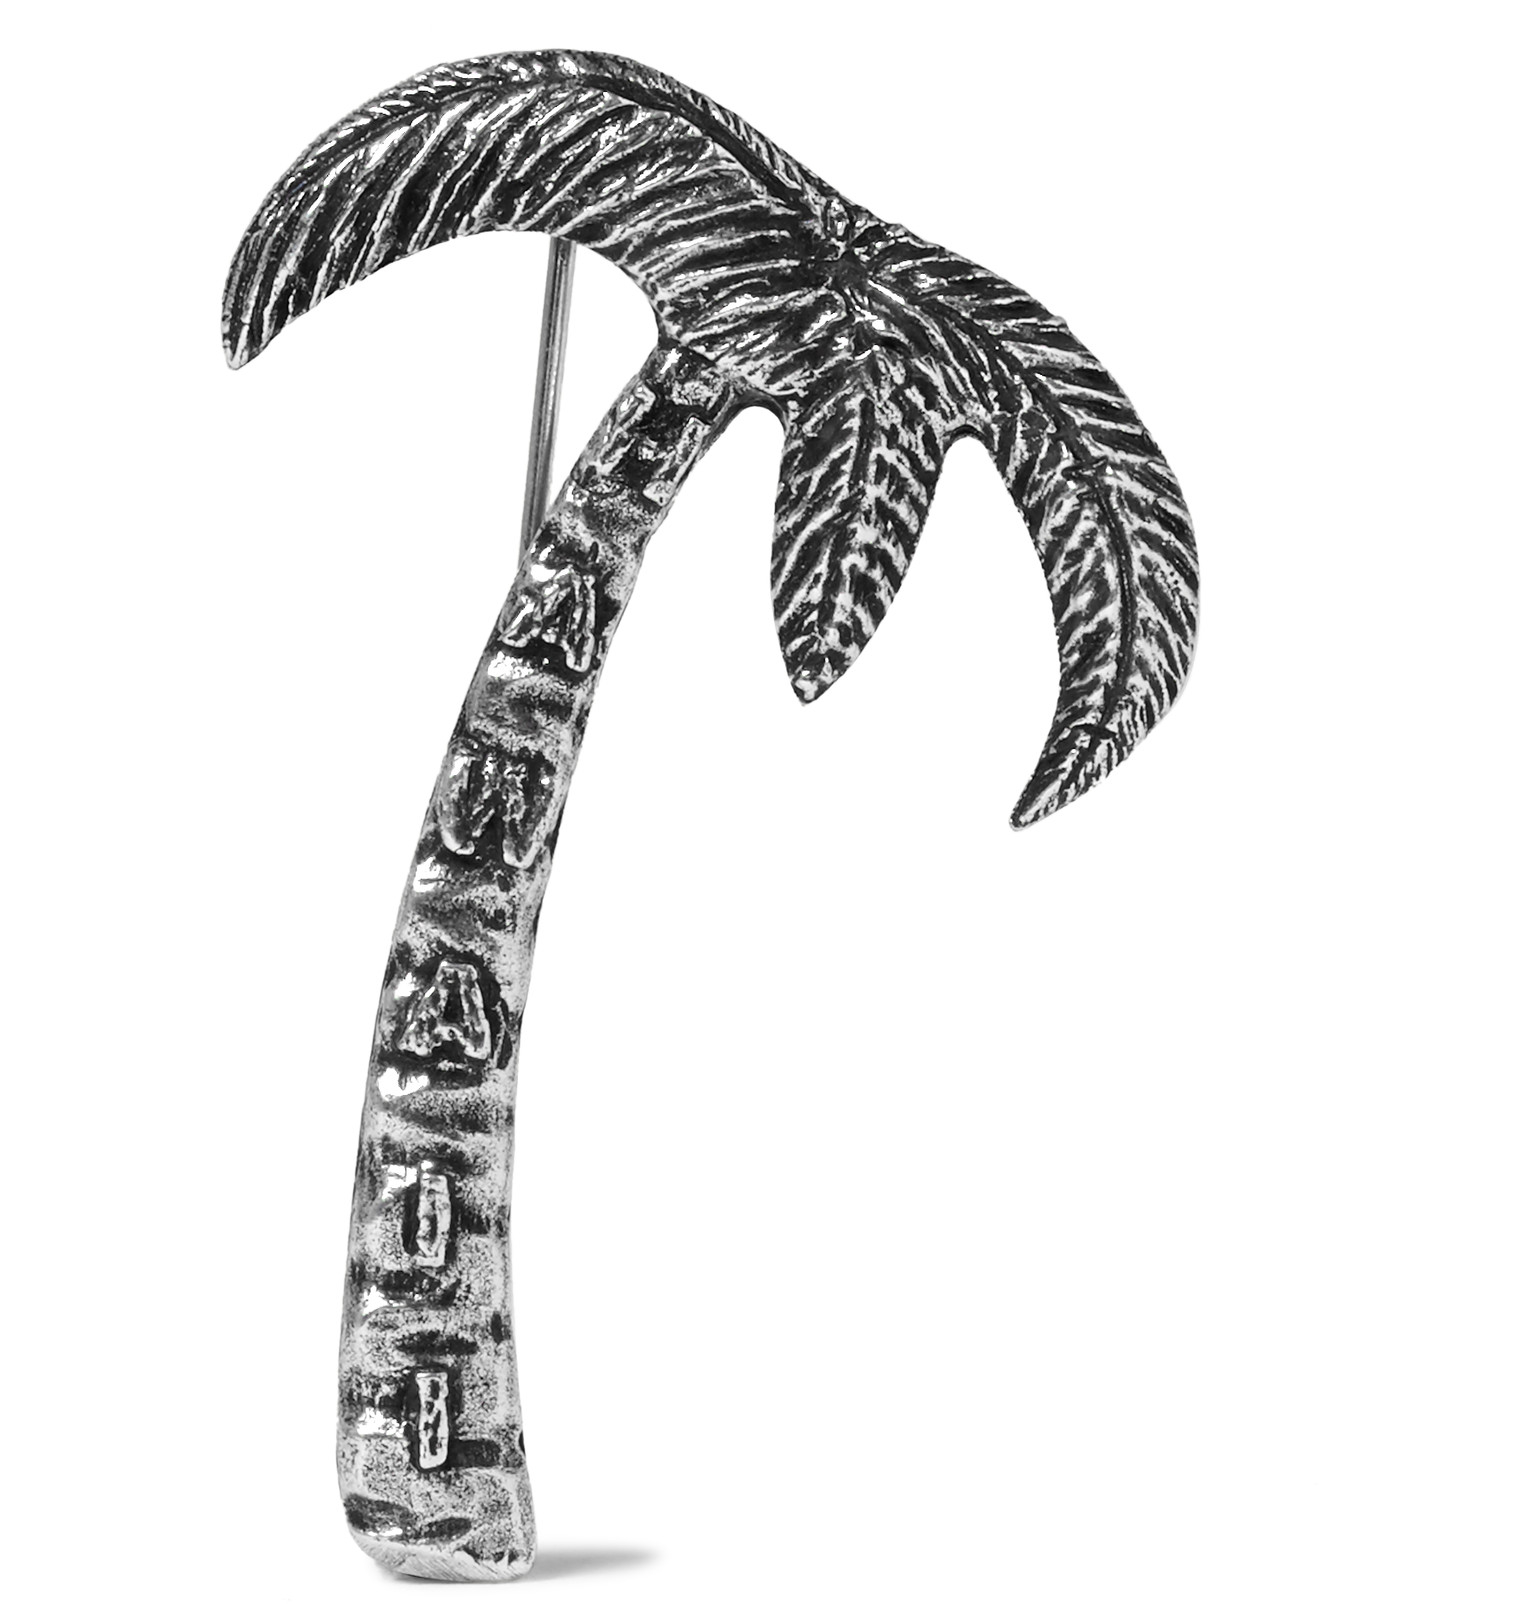 a203d808ac3 Saint Laurent Palm Tree Badge Silver $395 Palm_Tree_Silver ,  Palm_Tree_Silver2 , Palm_Tree_Silver3